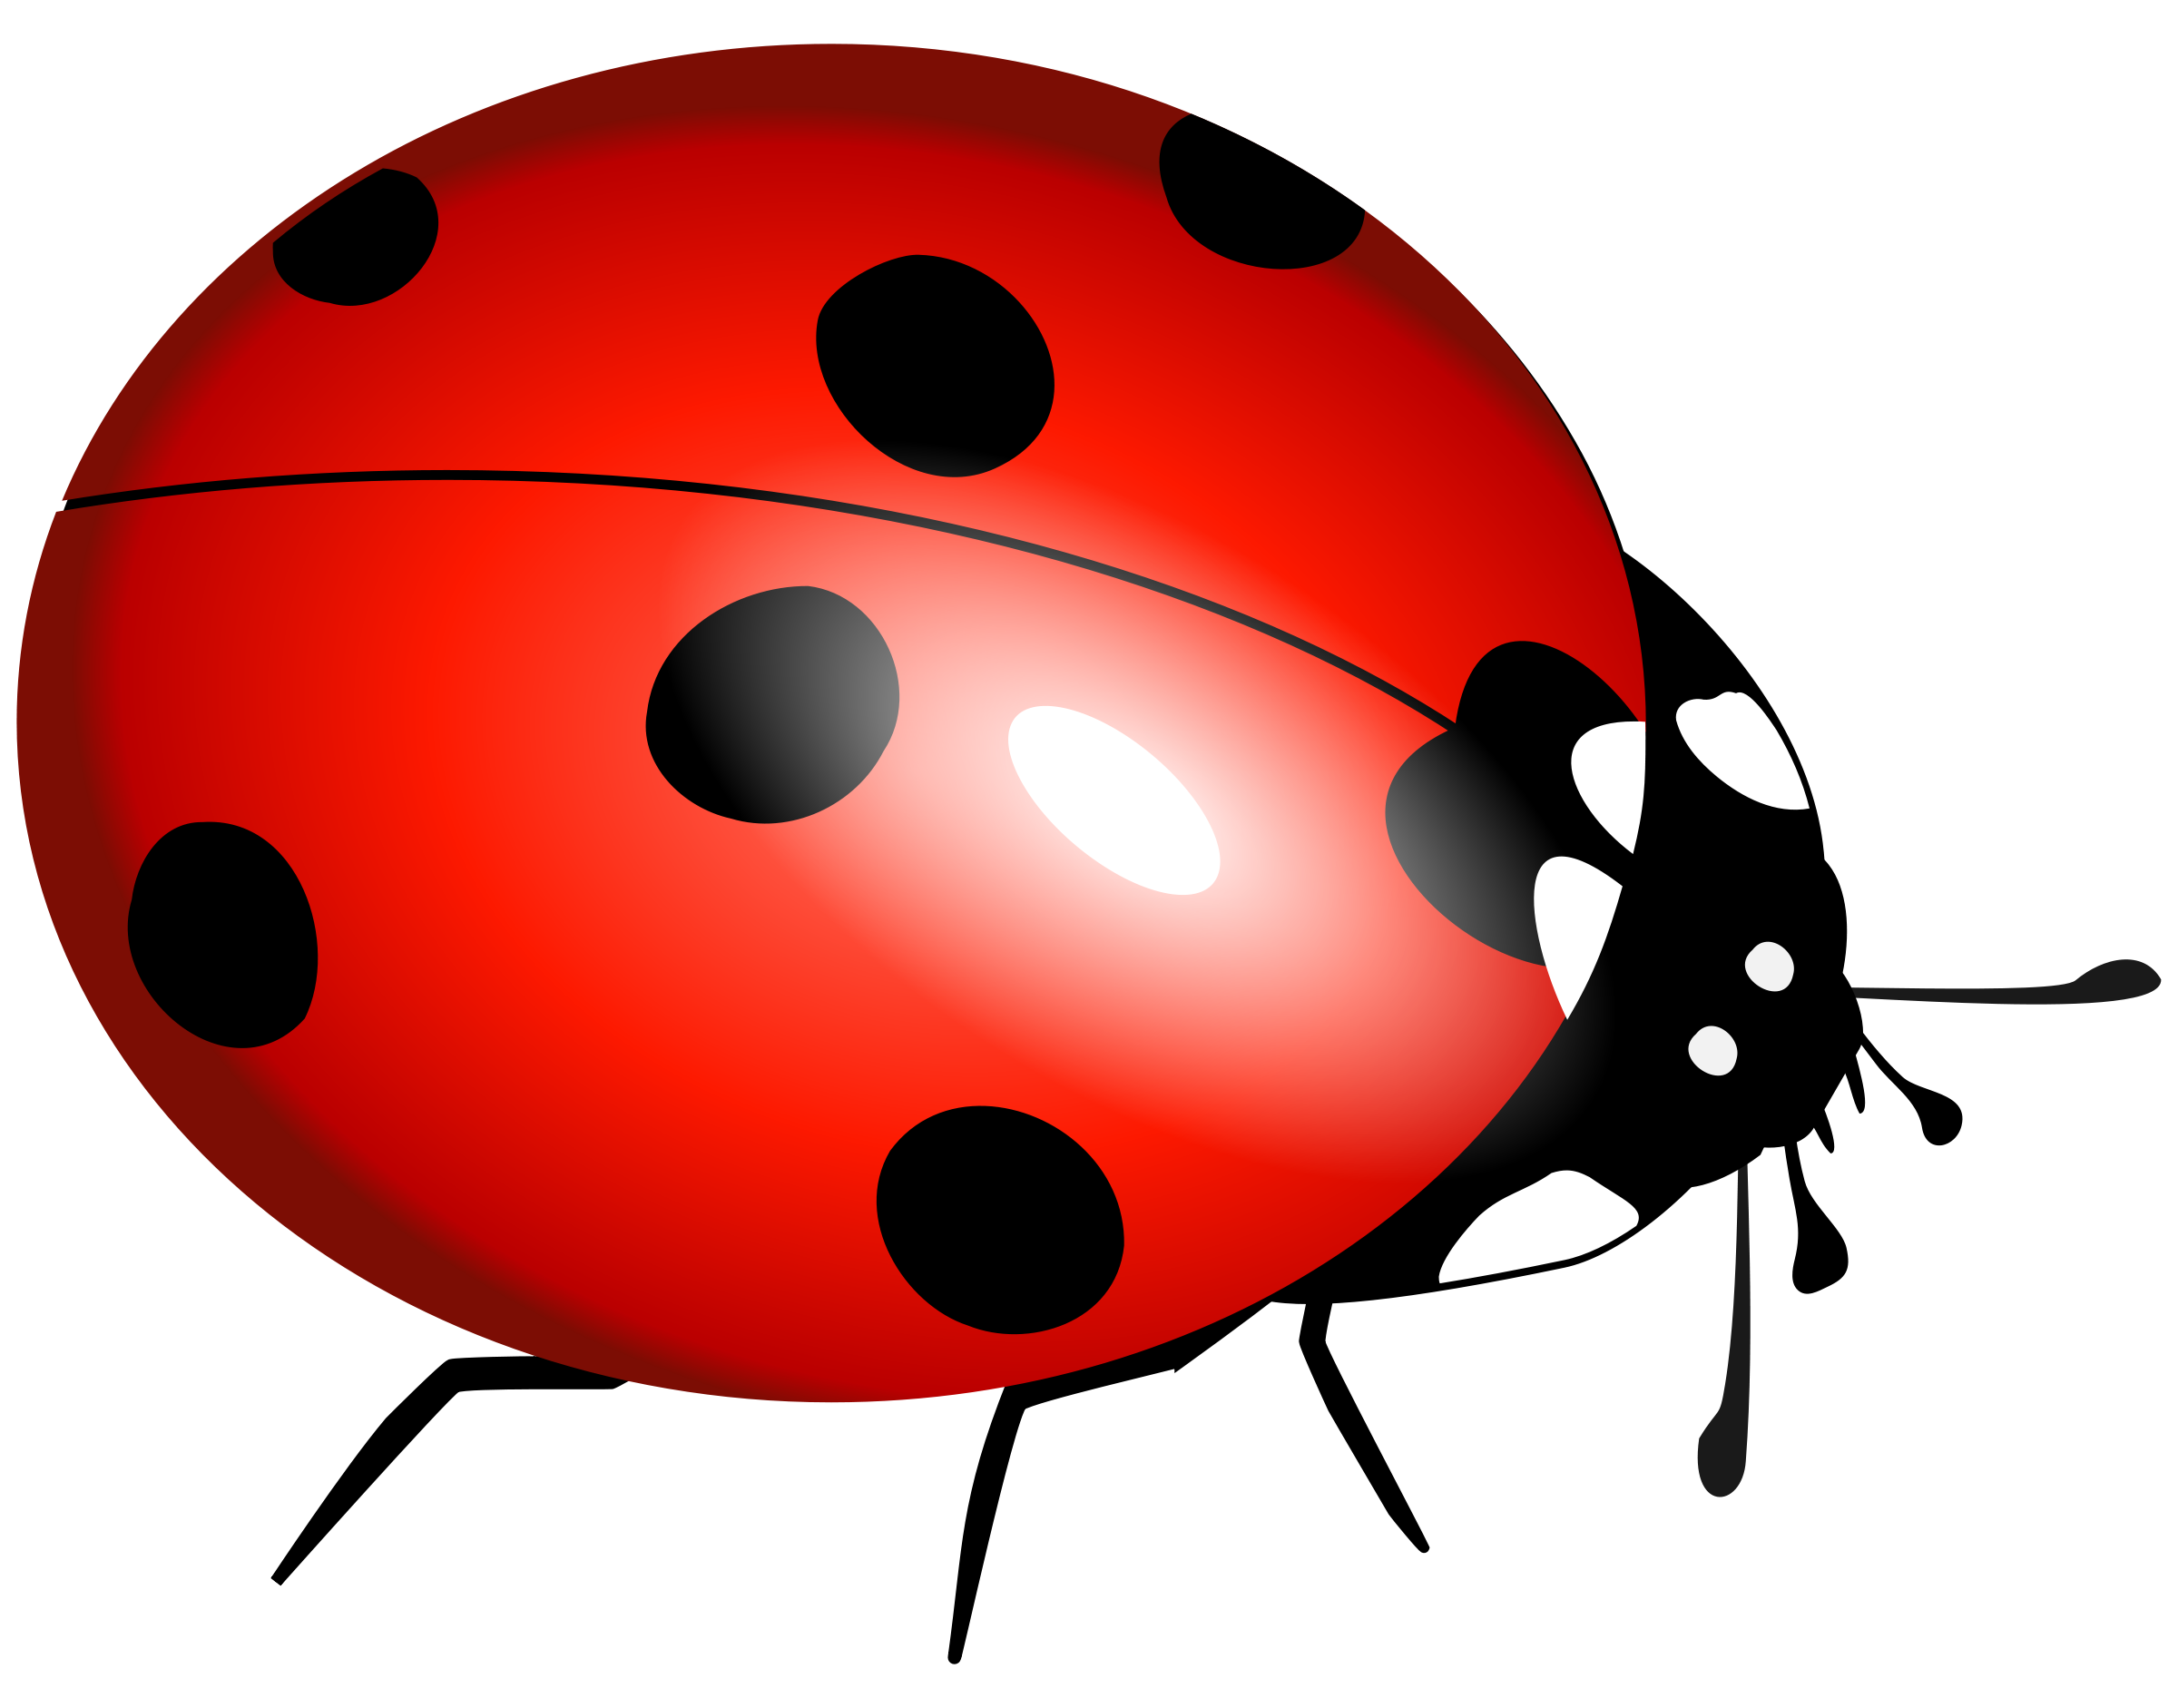 Free lady bug clipart illustration-Free lady bug clipart illustration-17